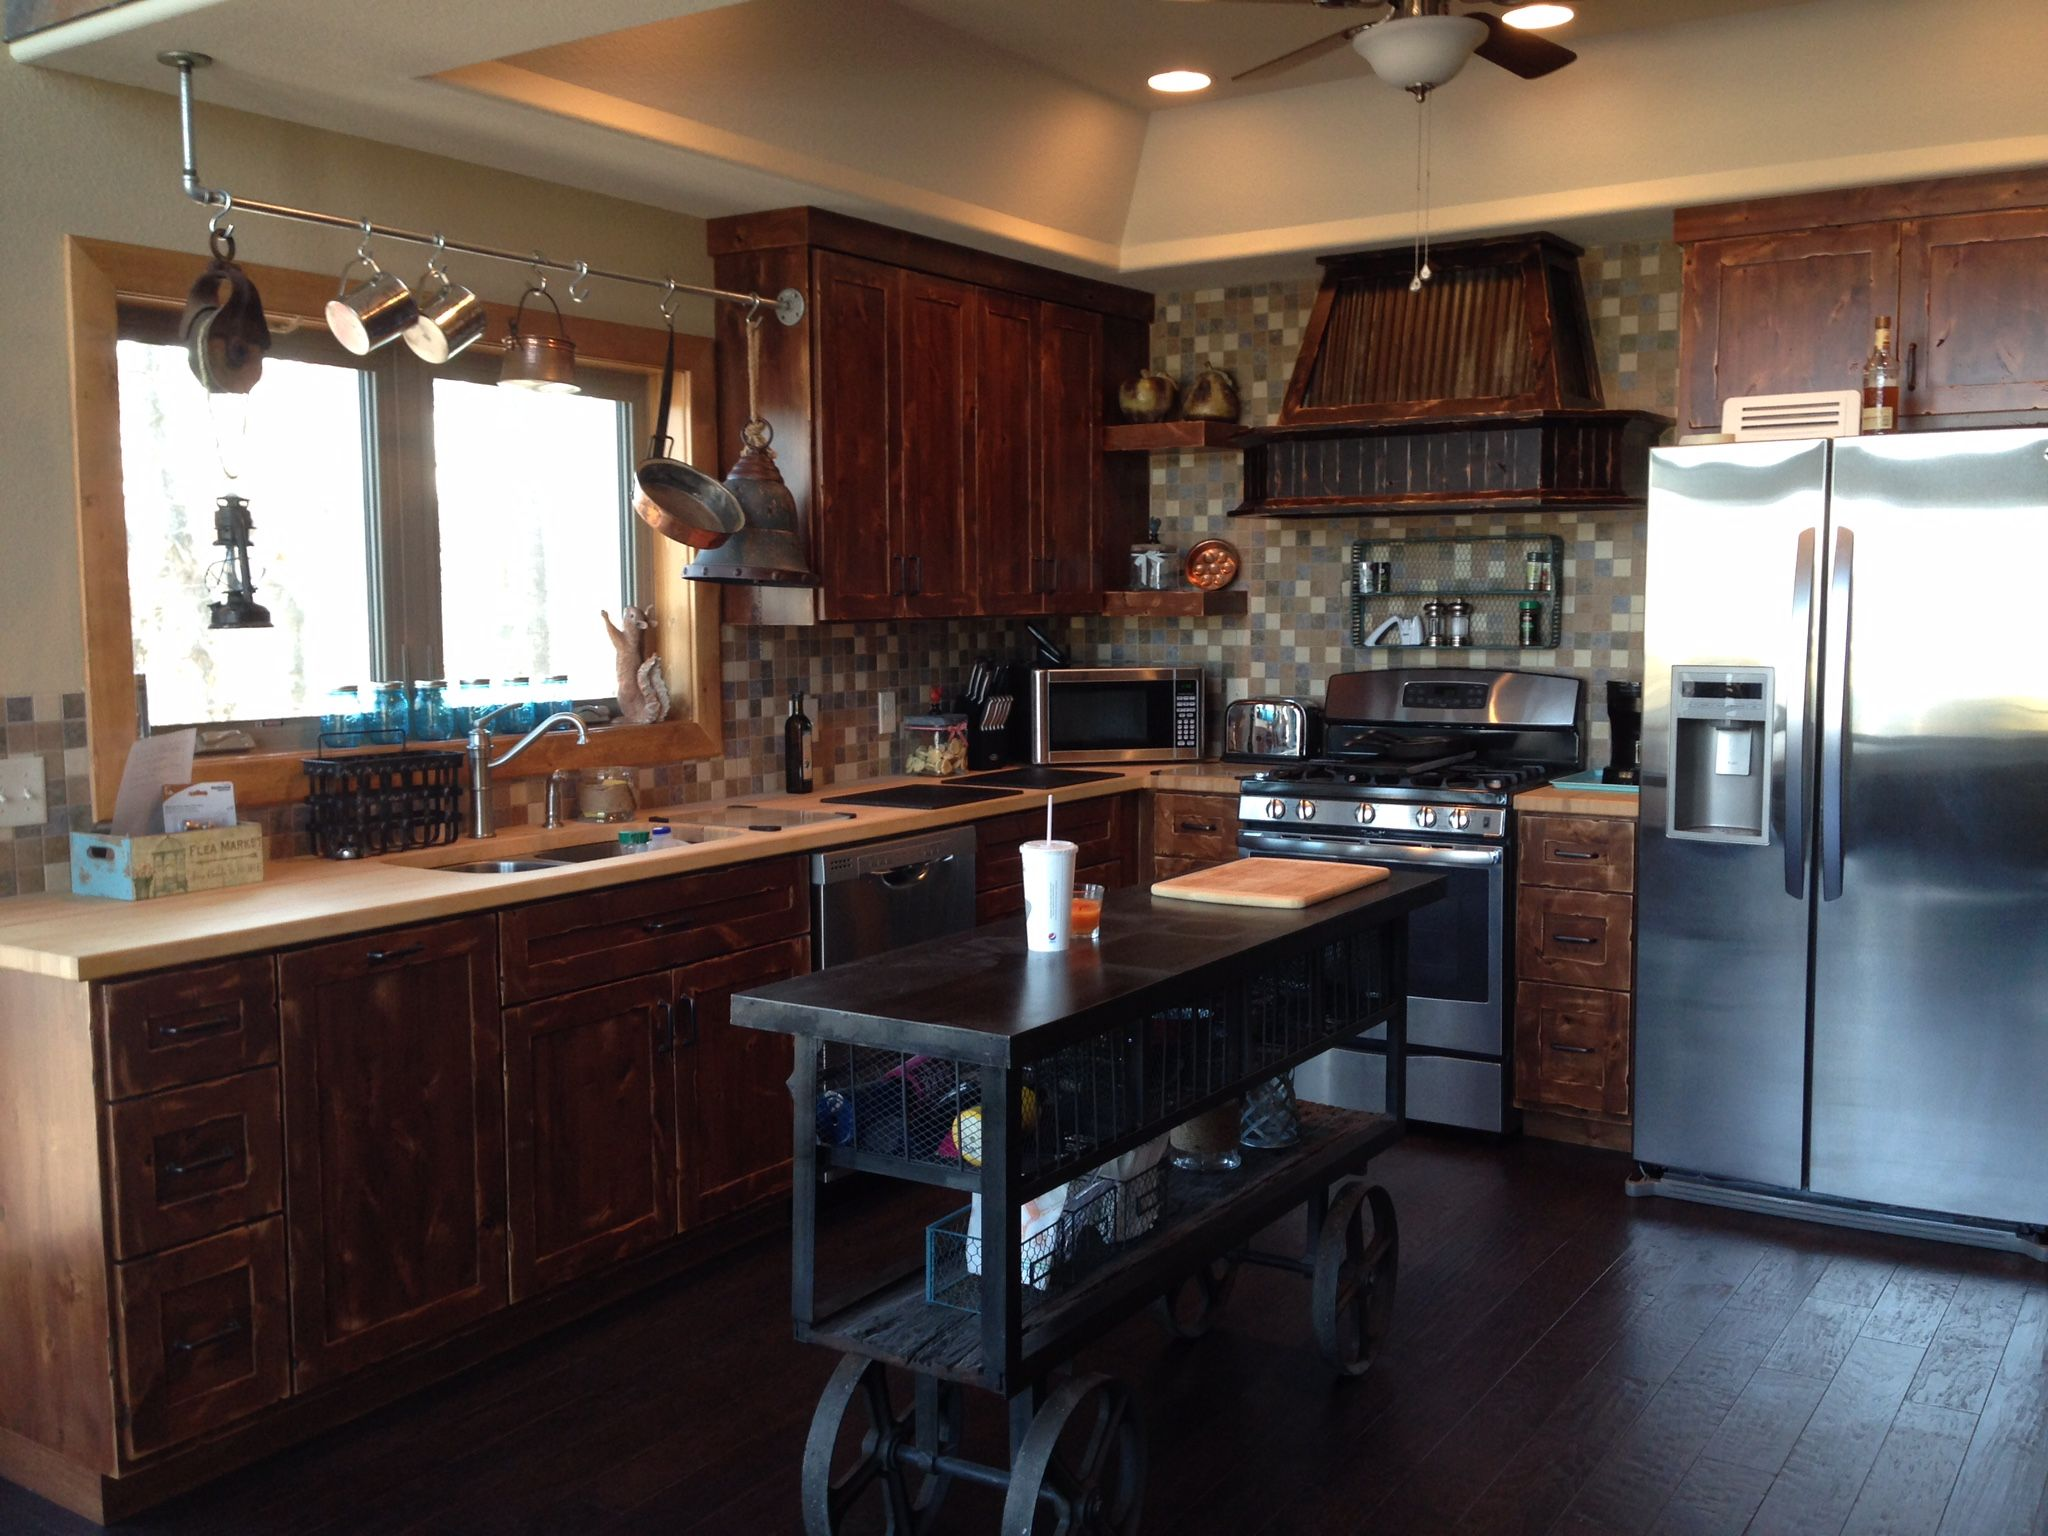 Rustic Kitchen Cabinets With A Butcher Block Counter Trolley Cart From Nebraska Furniture Mart Used As Island Pan Rack Is Galvanized Plumbing Pipe